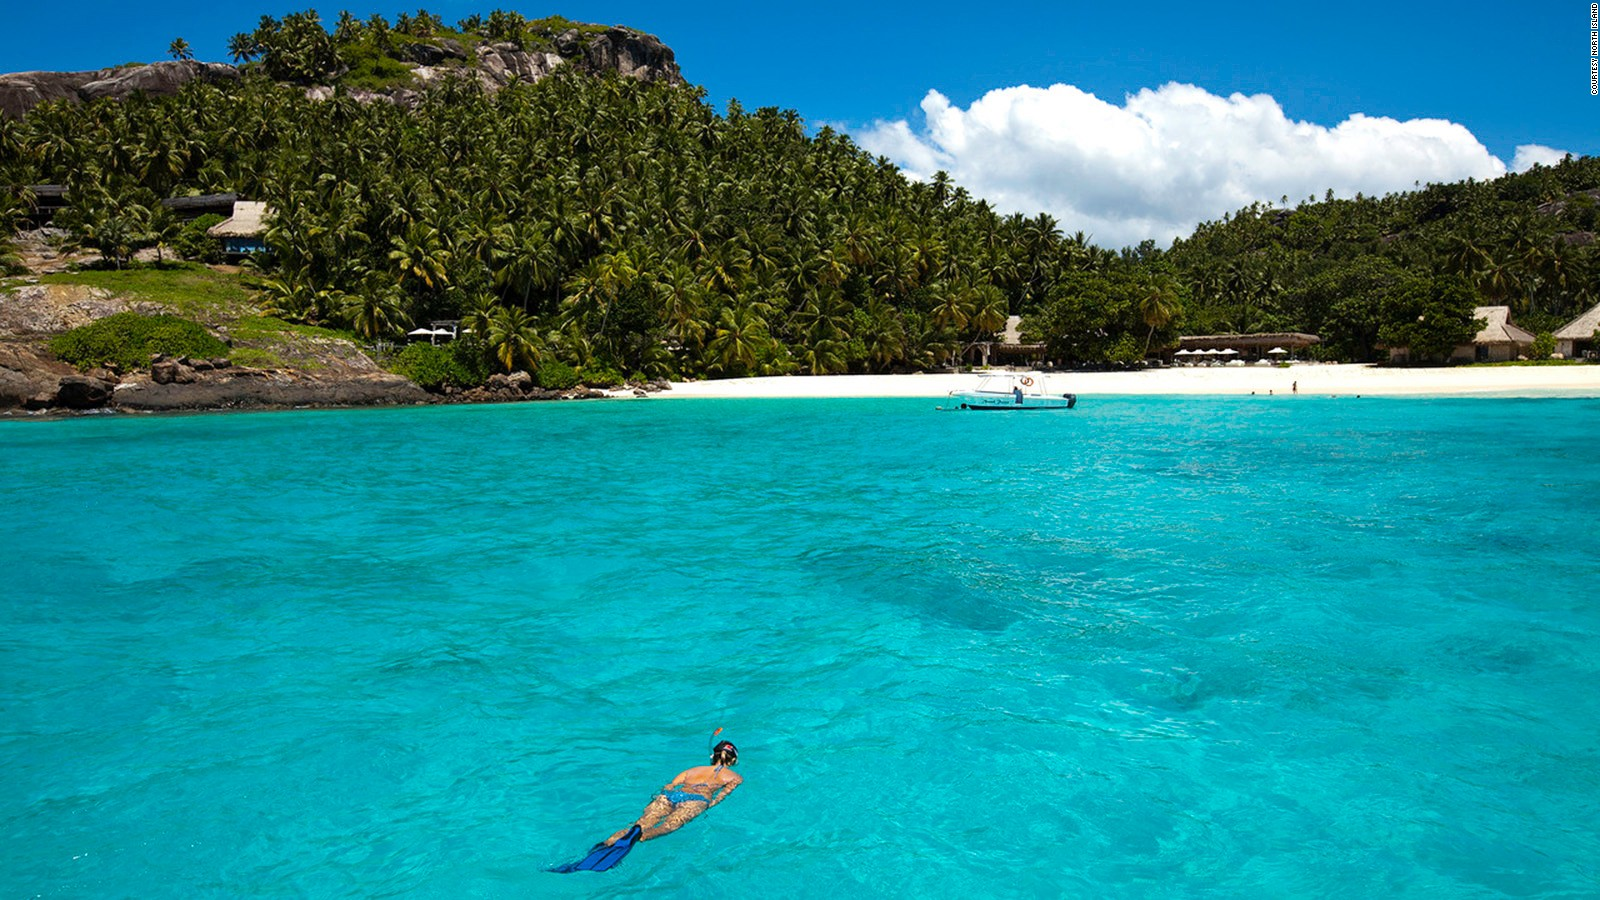 Seychelles Resorts Of The Best CNN Travel - 8 places to visit in the seychelles islands